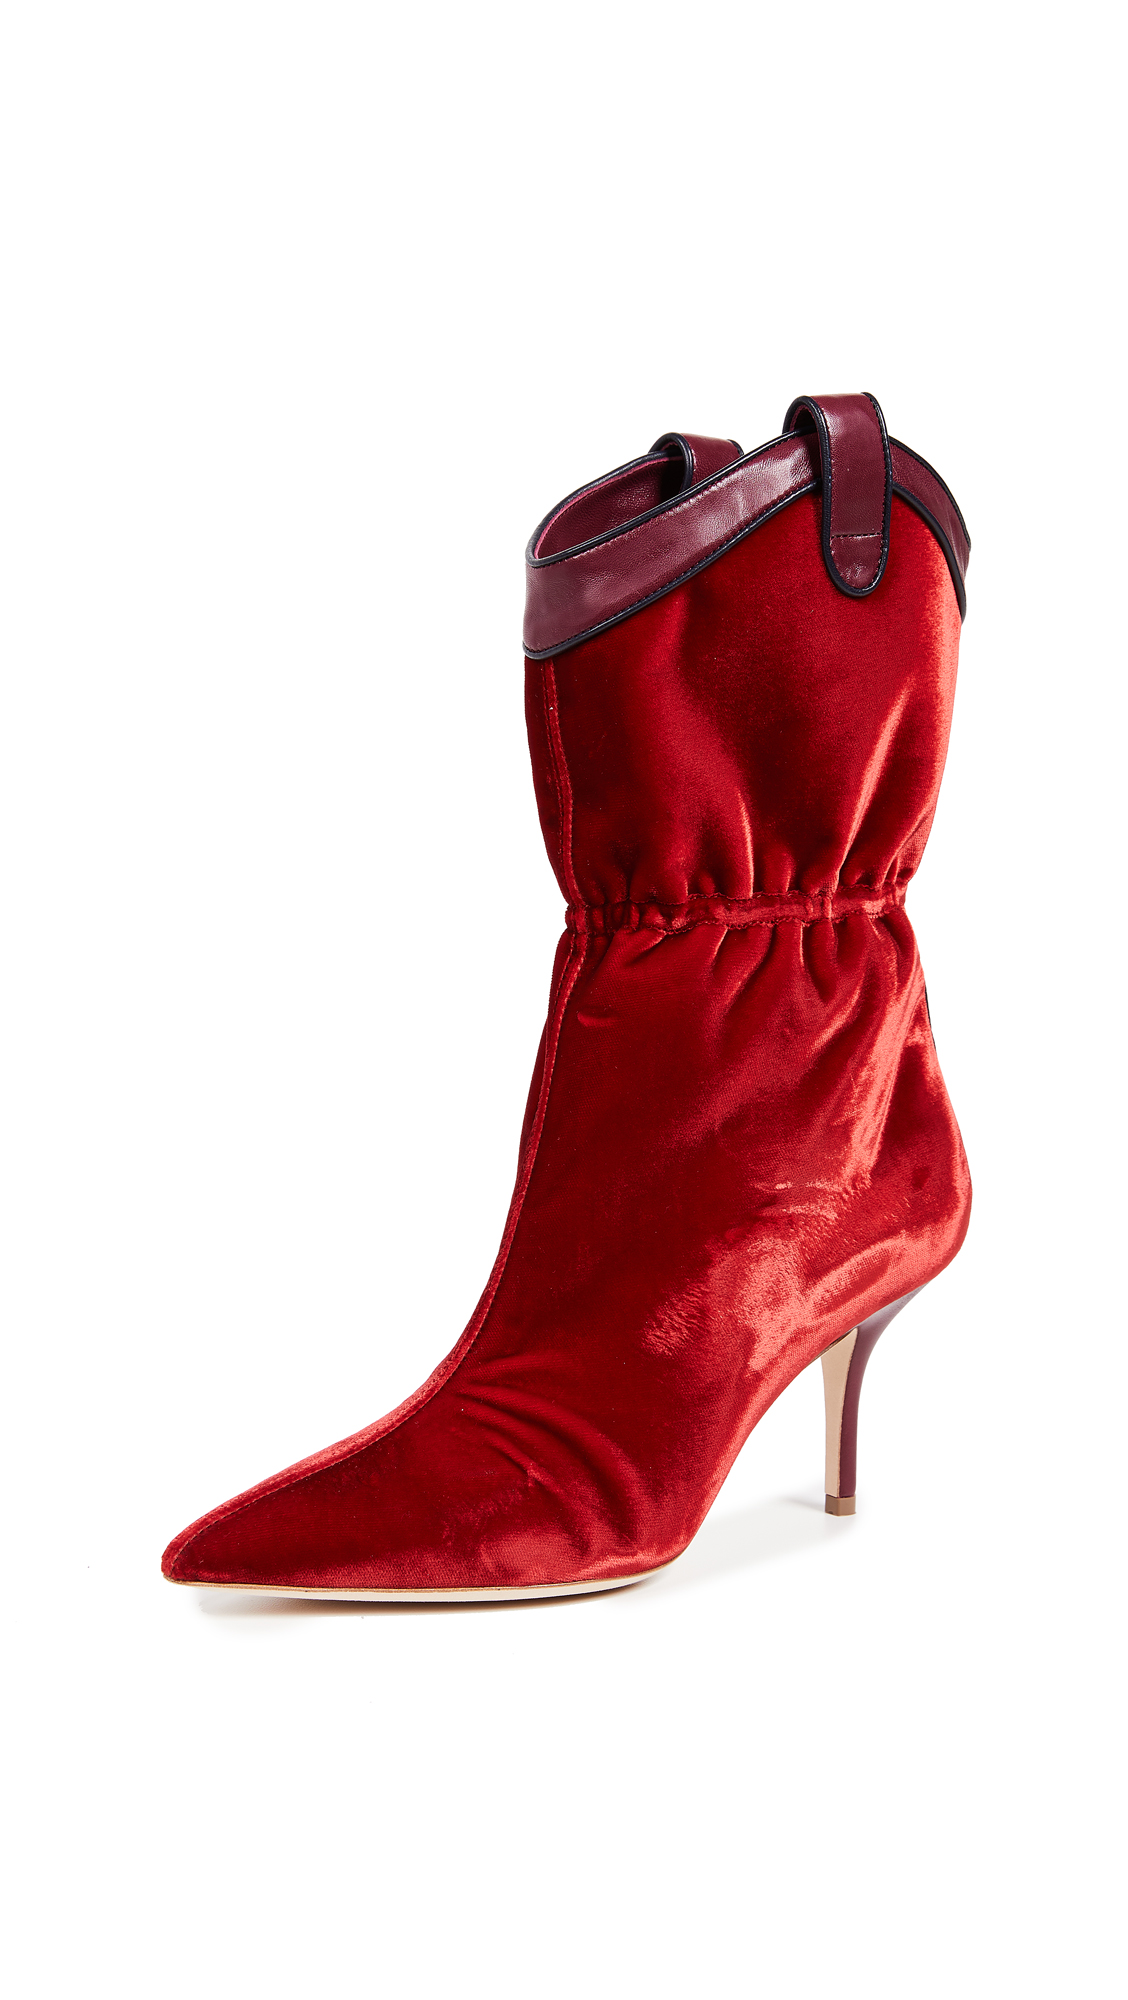 Malone Souliers by Roy Luwolt Daisy 70 Boots - Scarlet/Burgundy/Midnight